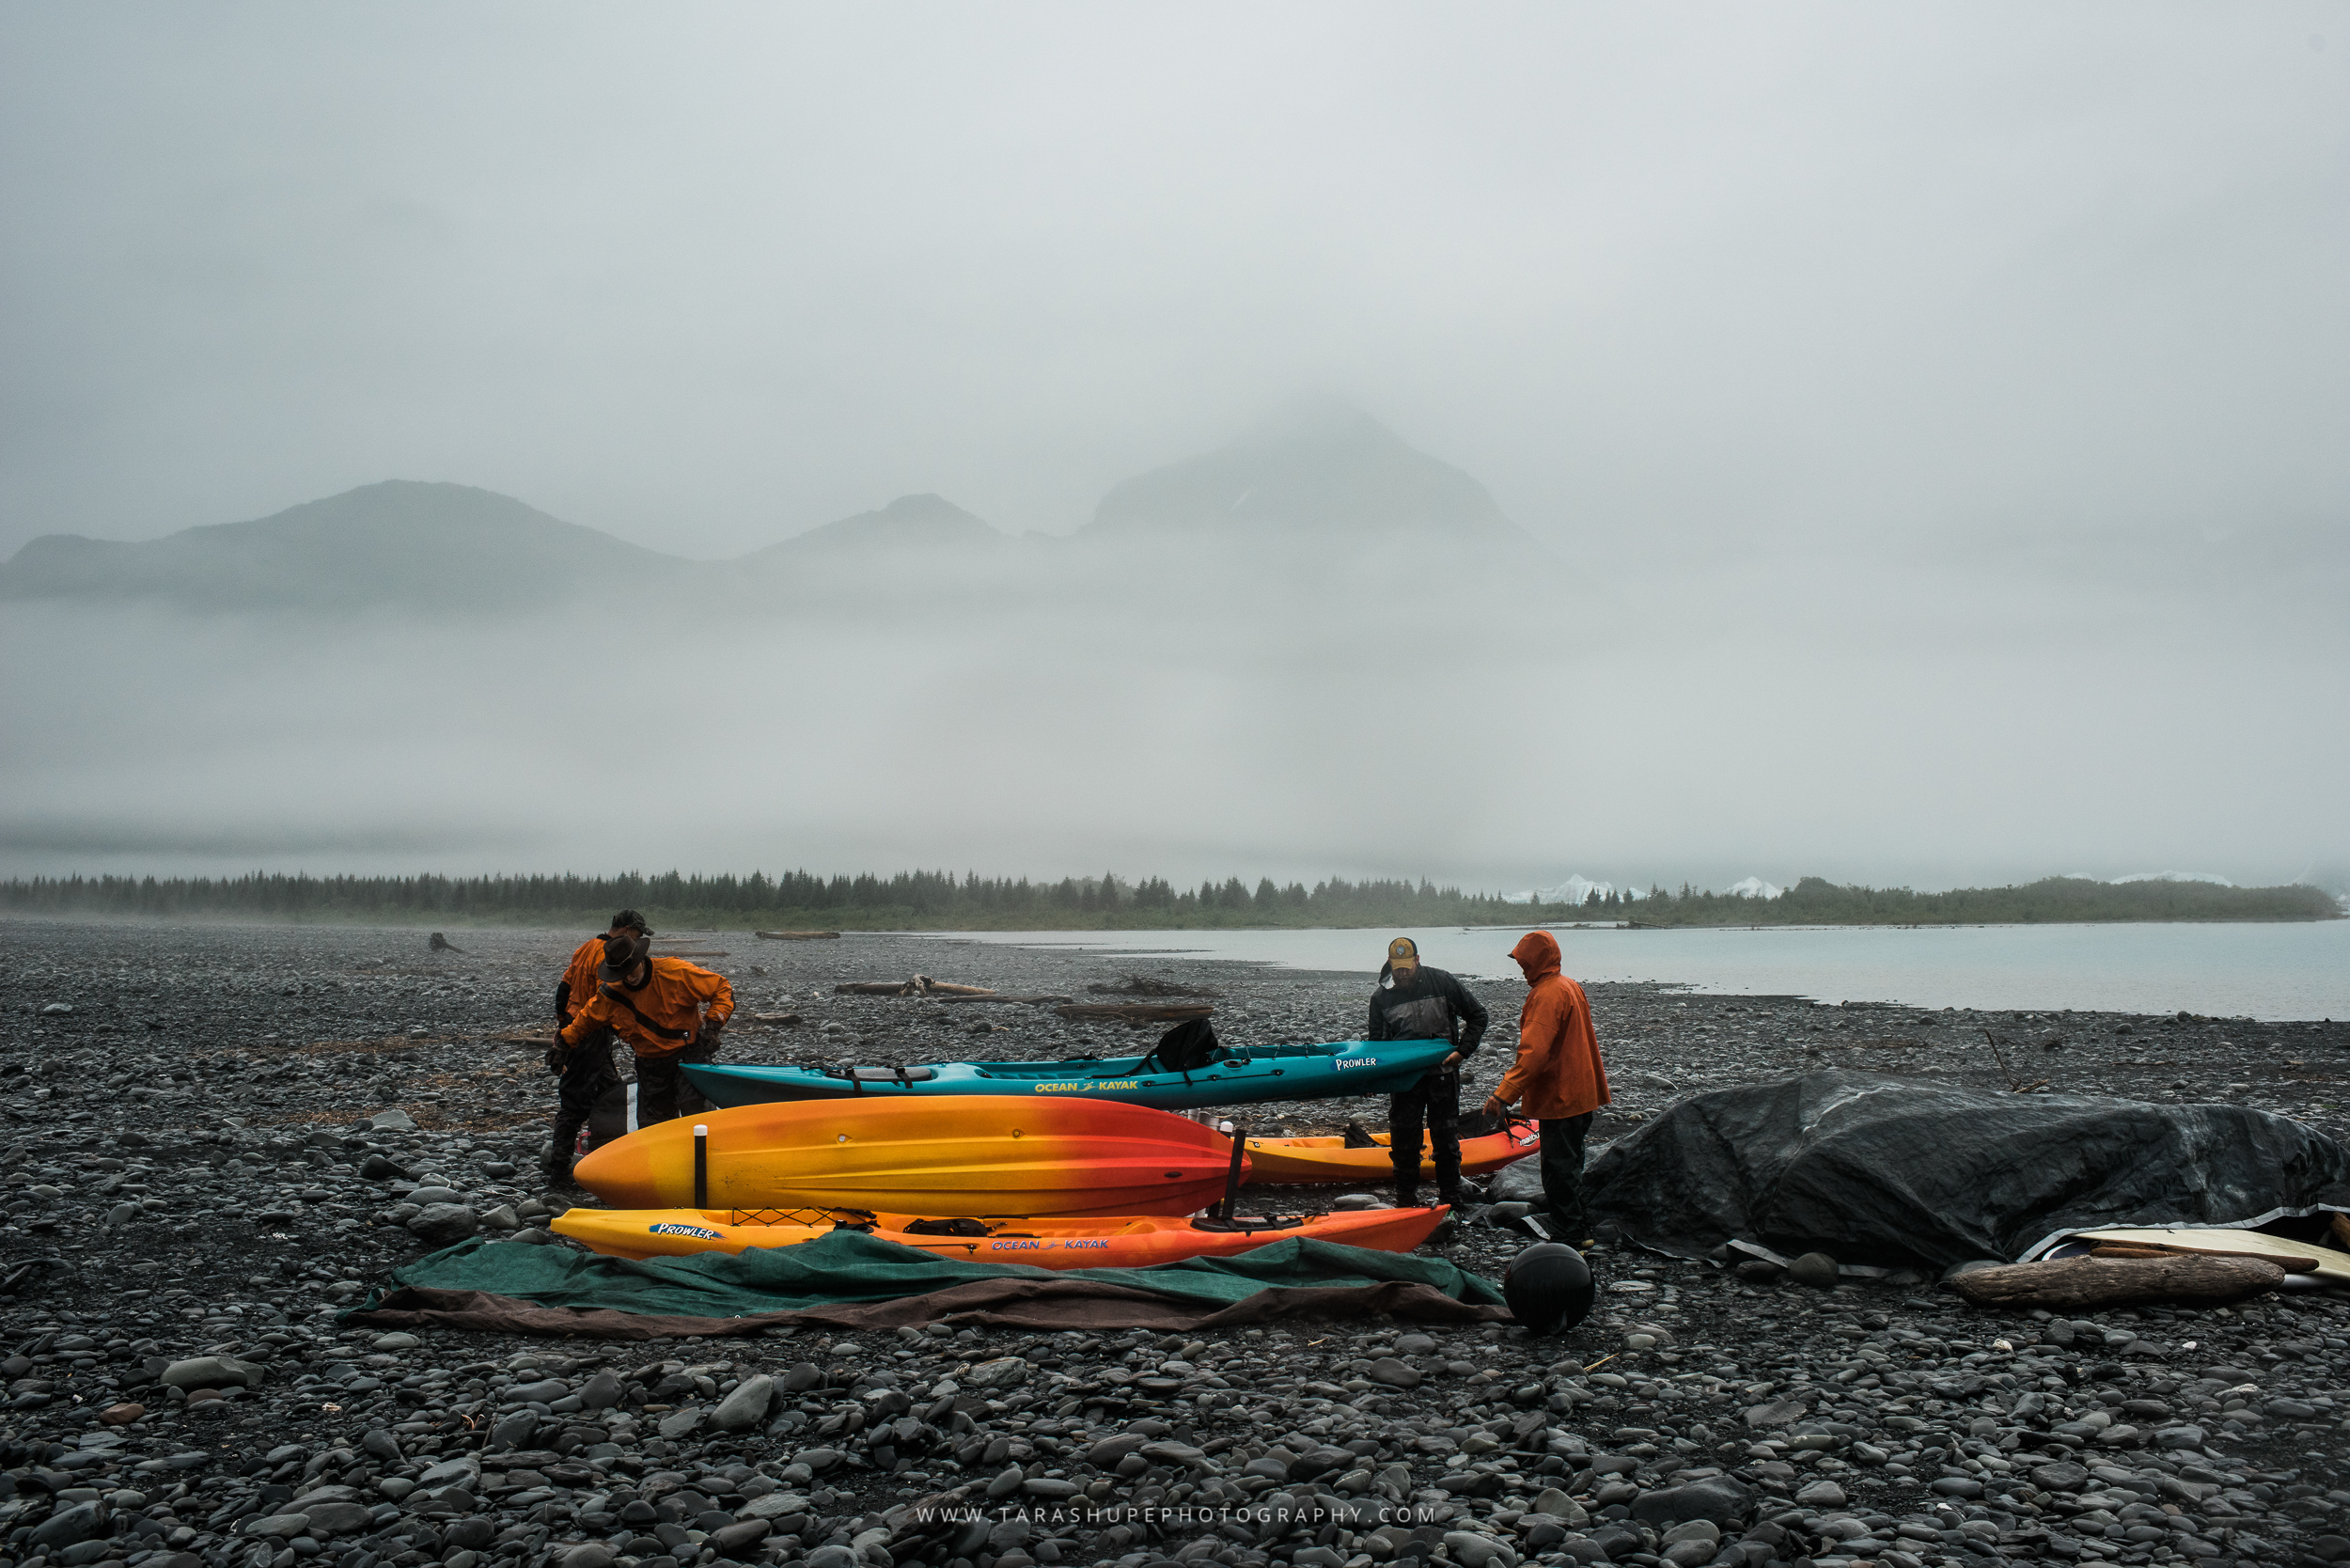 ALASKA_TaraShupe_Outdoor_Adventure_DSC_4695.jpg